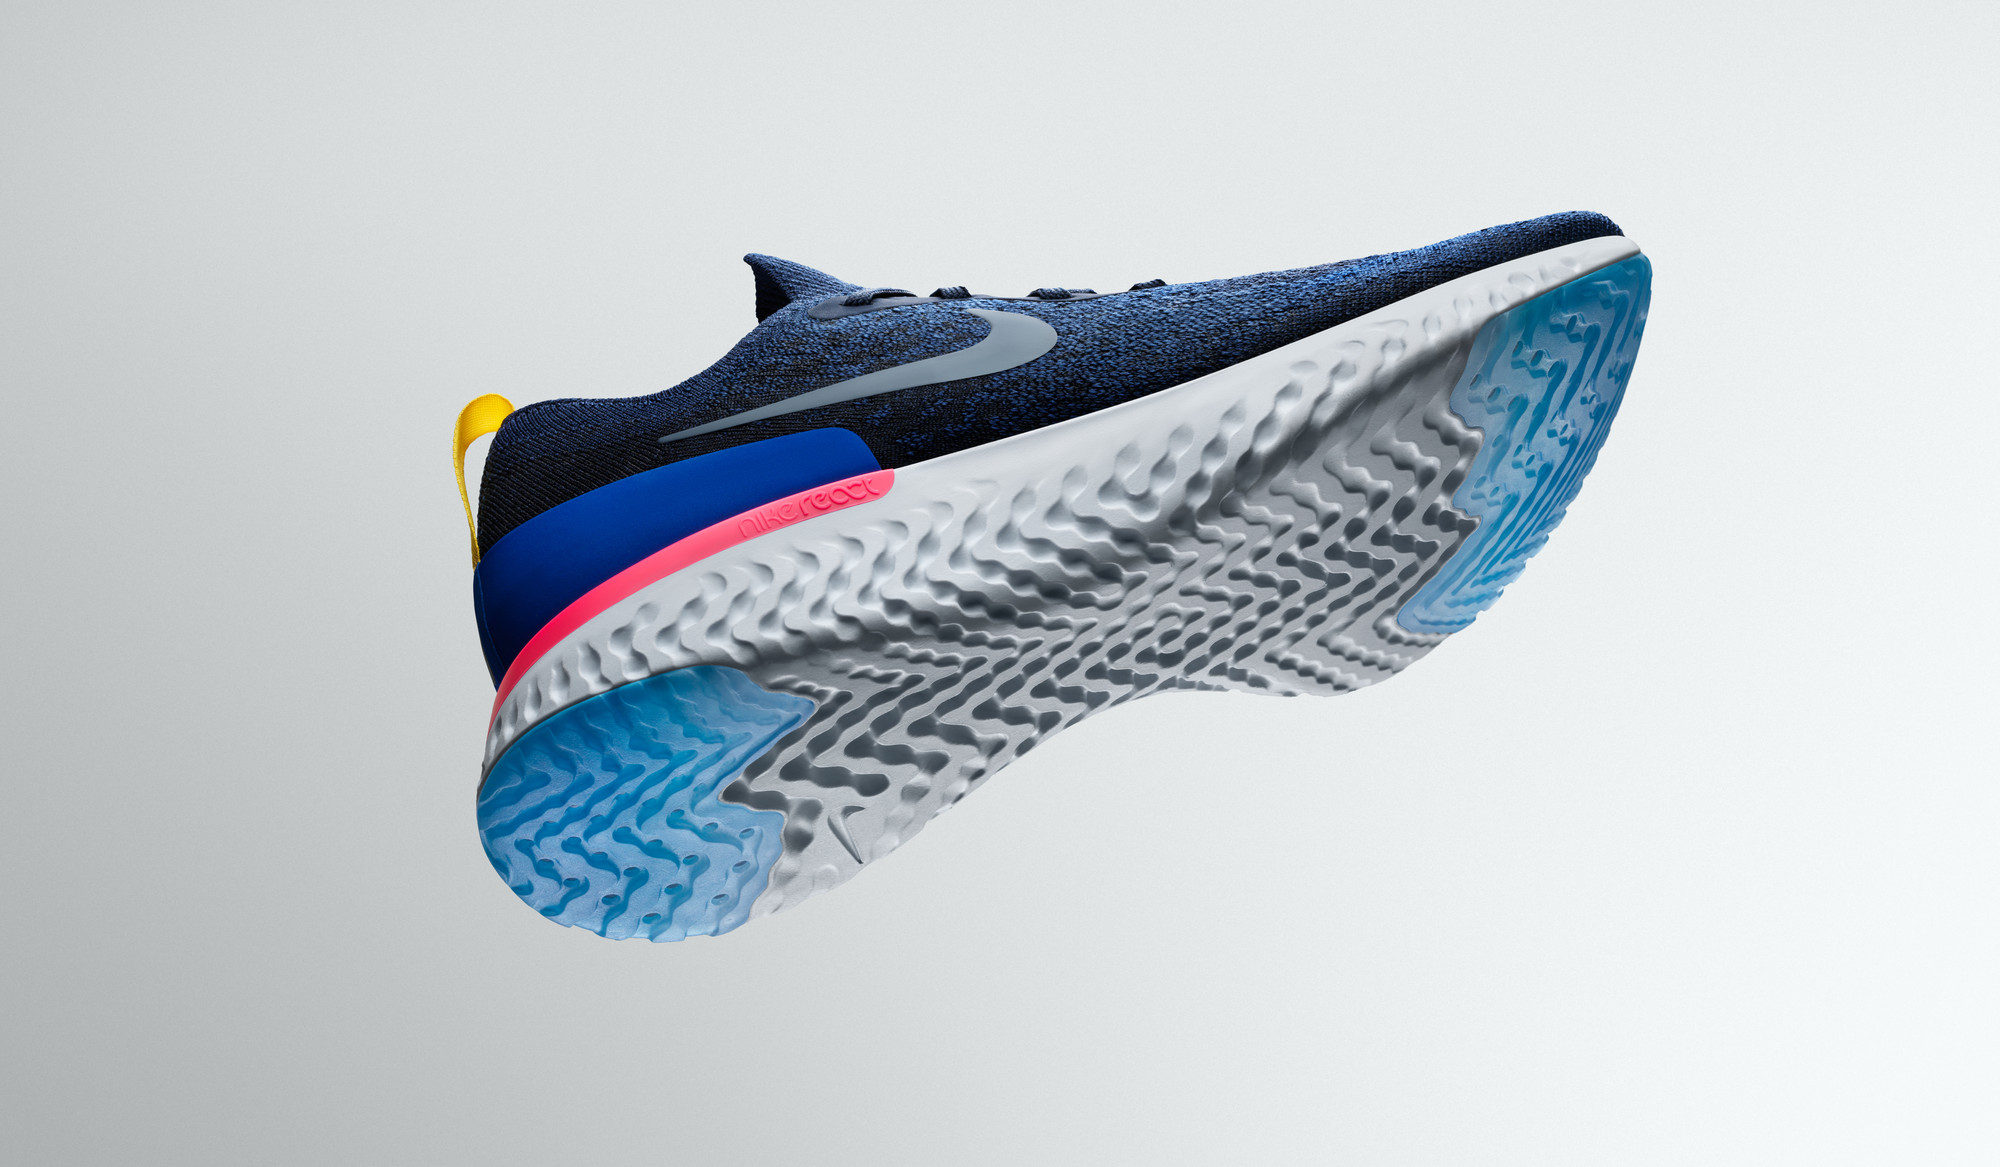 The Nike Epic React Flyknit is